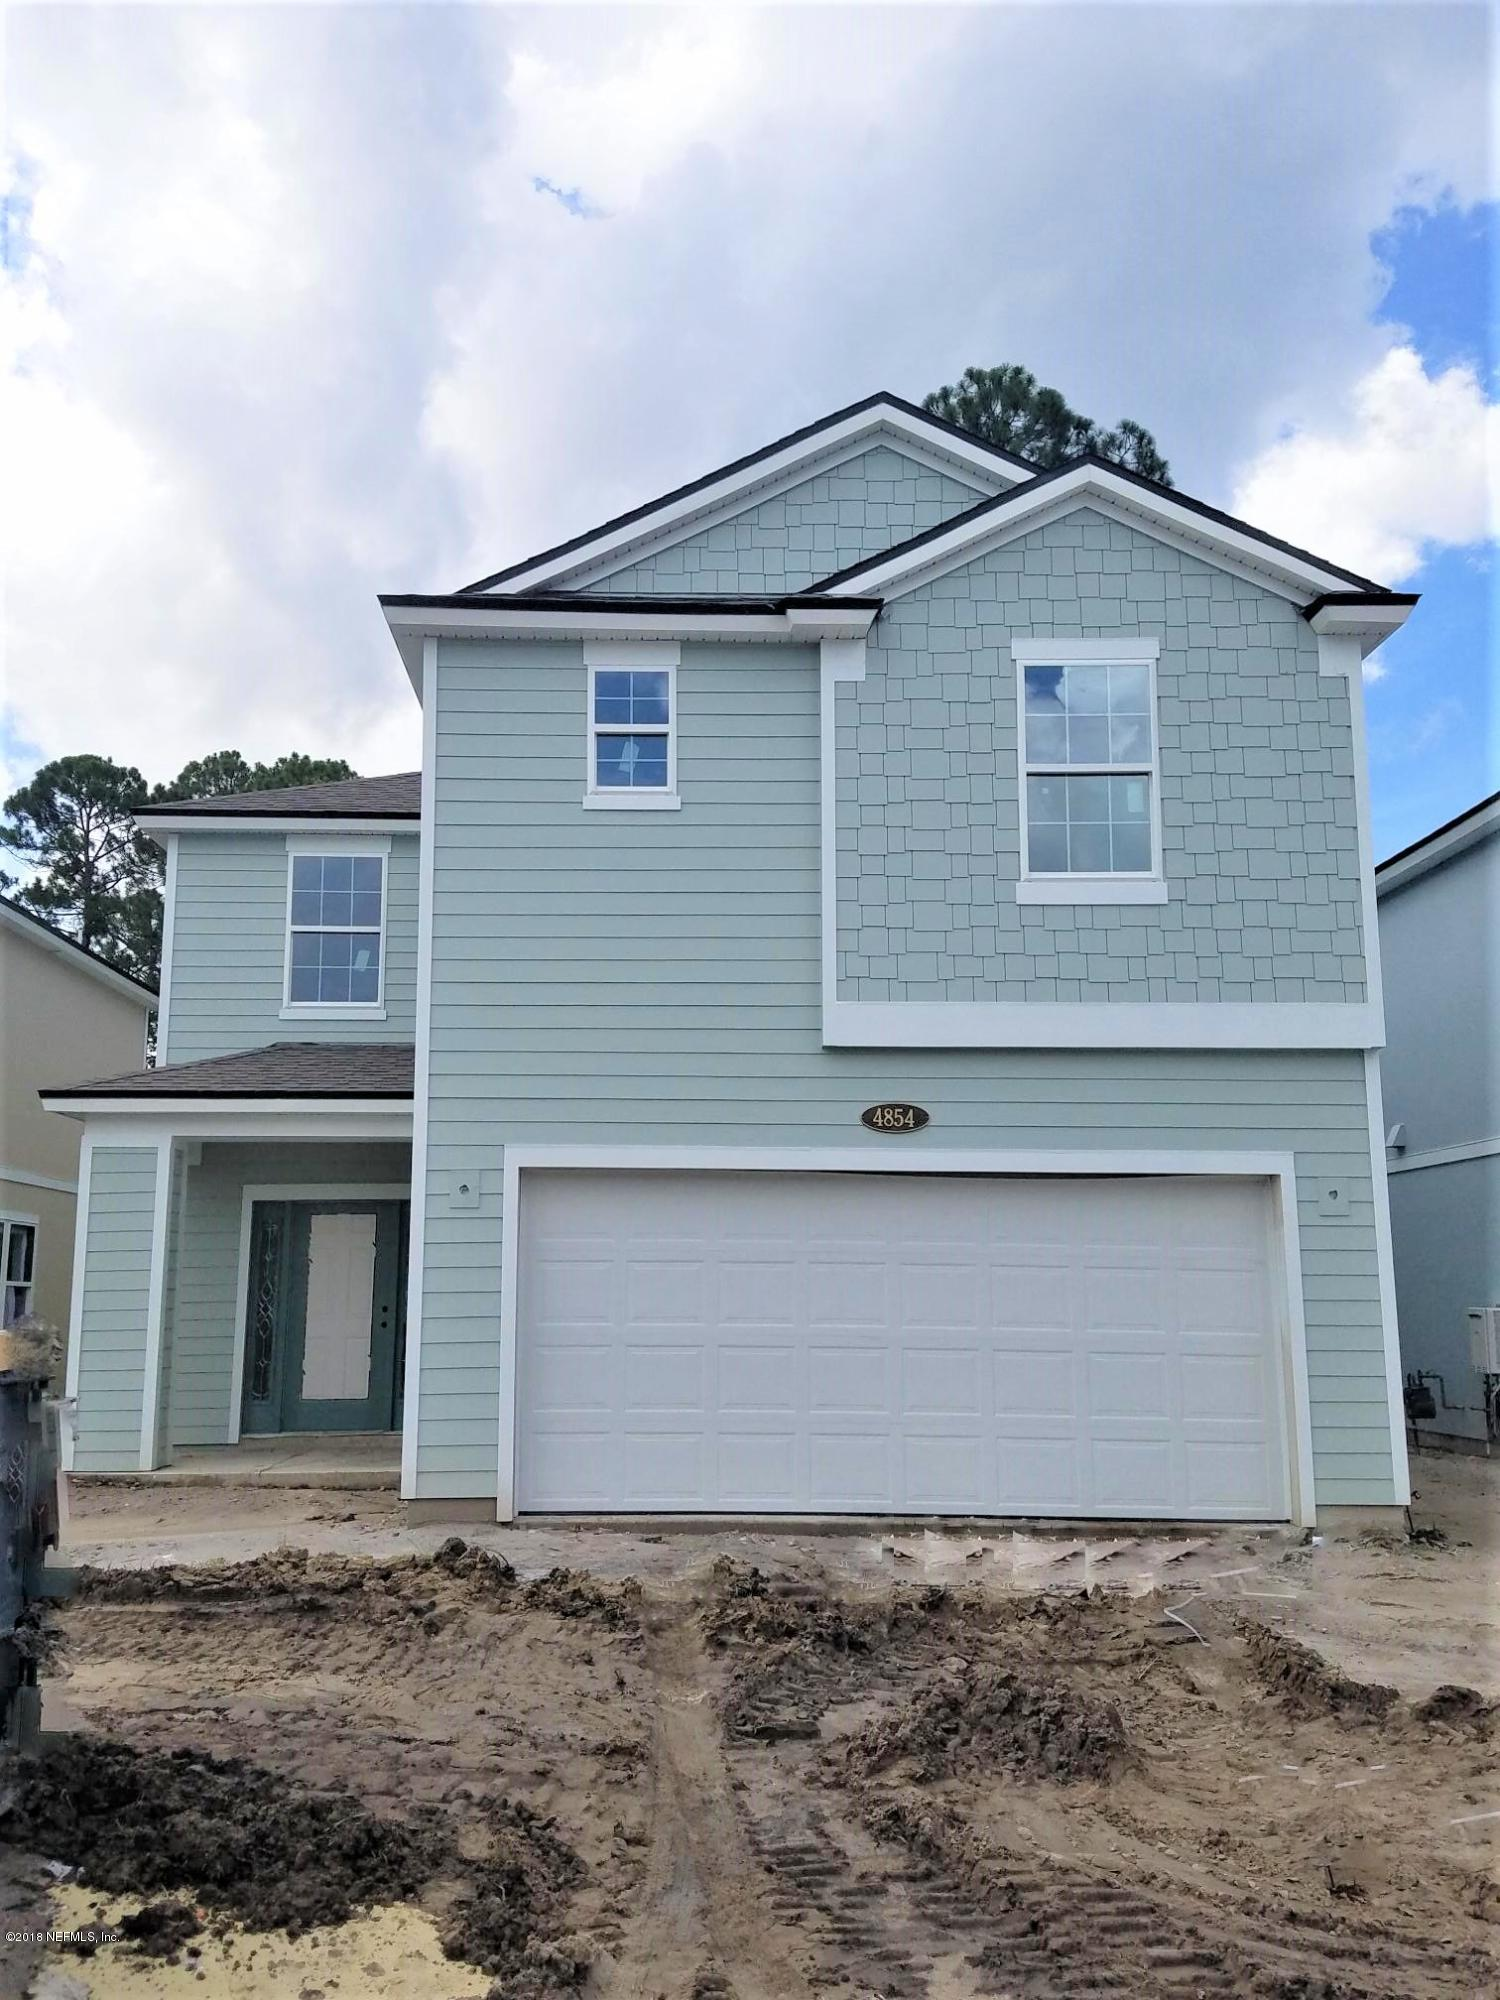 4854 RED EGRET, JACKSONVILLE, FLORIDA 32257, 3 Bedrooms Bedrooms, ,2 BathroomsBathrooms,Residential - single family,For sale,RED EGRET,946193